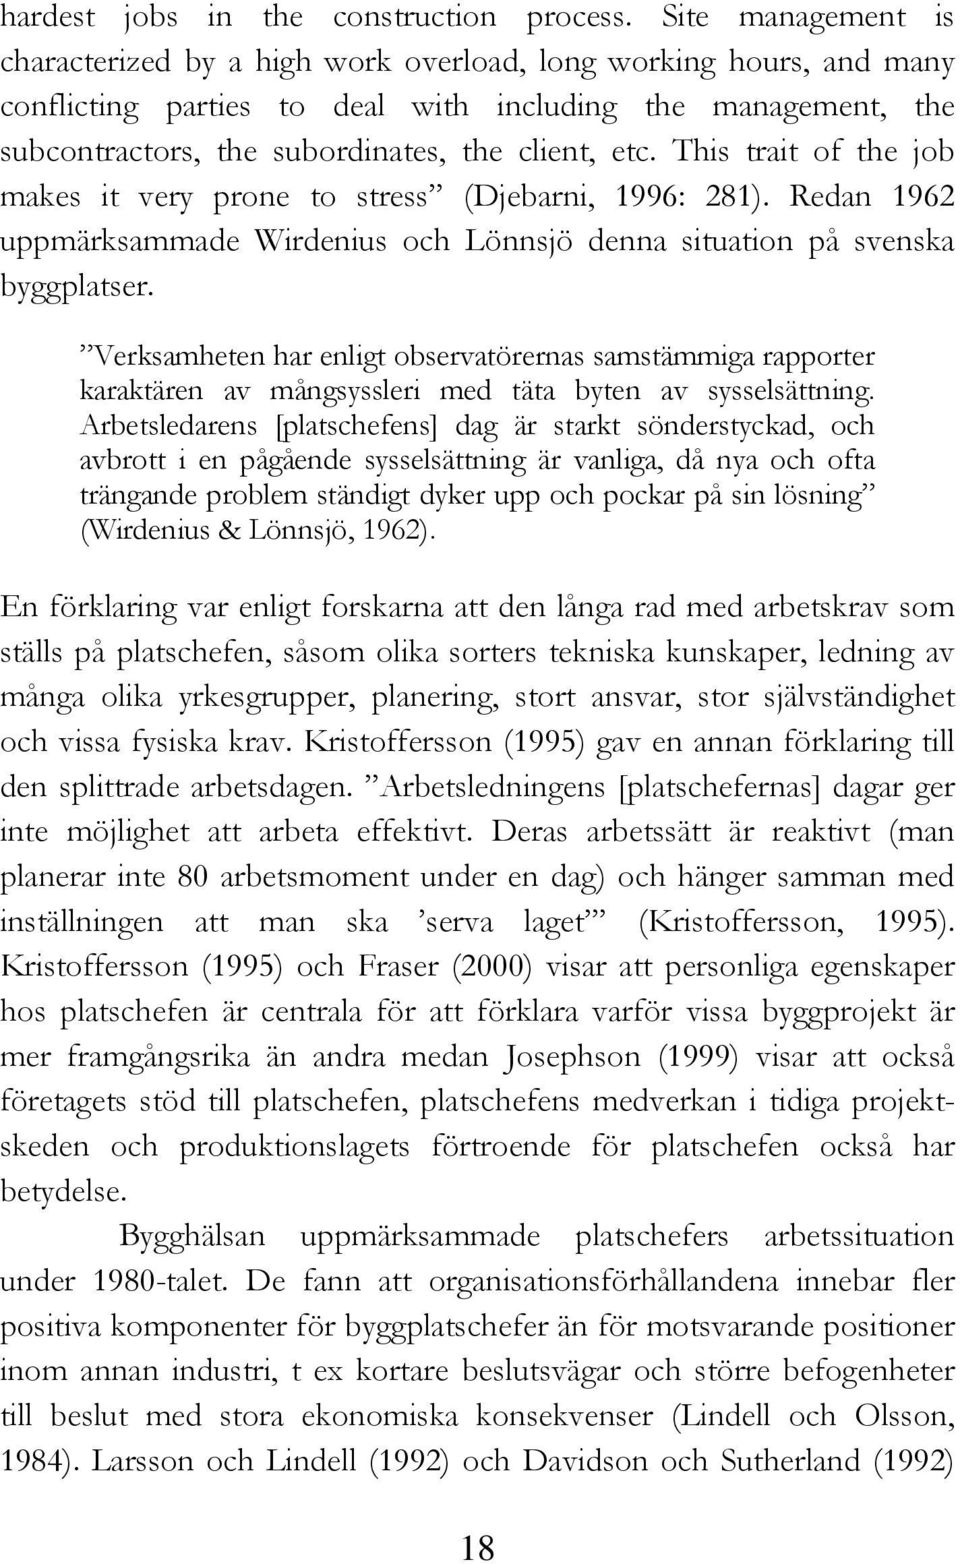 This trait of the job makes it very prone to stress (Djebarni, 1996: 281). Redan 1962 uppmärksammade Wirdenius och Lönnsjö denna situation på svenska byggplatser.